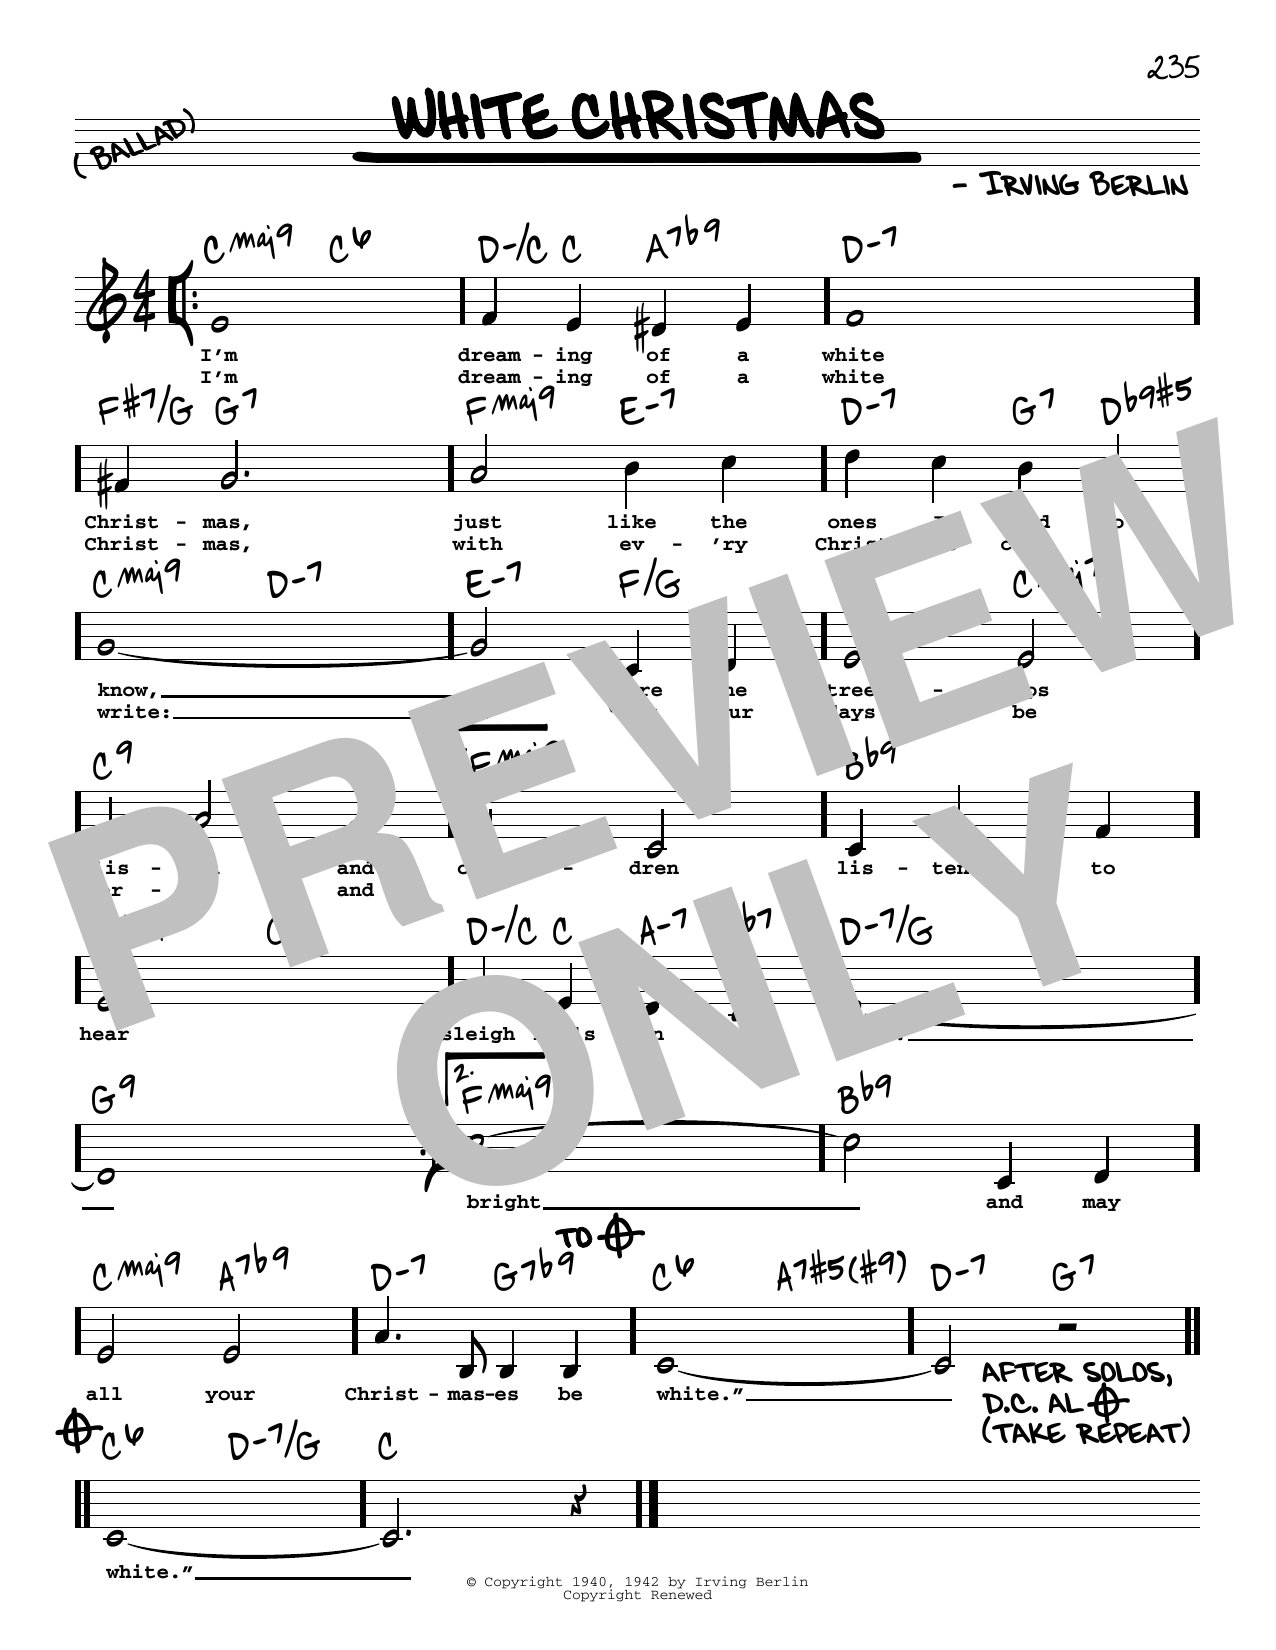 White Christmas Lyrics.White Christmas Real Book Melody Lyrics Chords Sheet Music